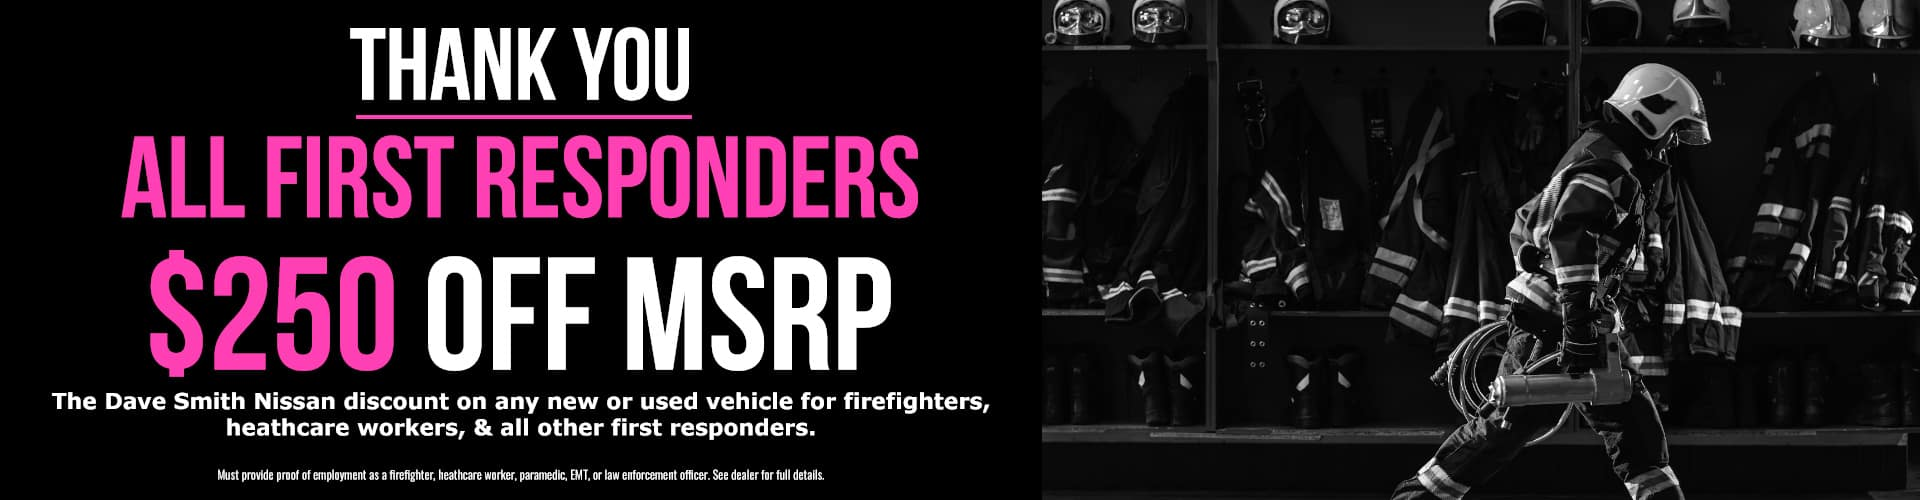 $250 OFF MSRP for First Responders